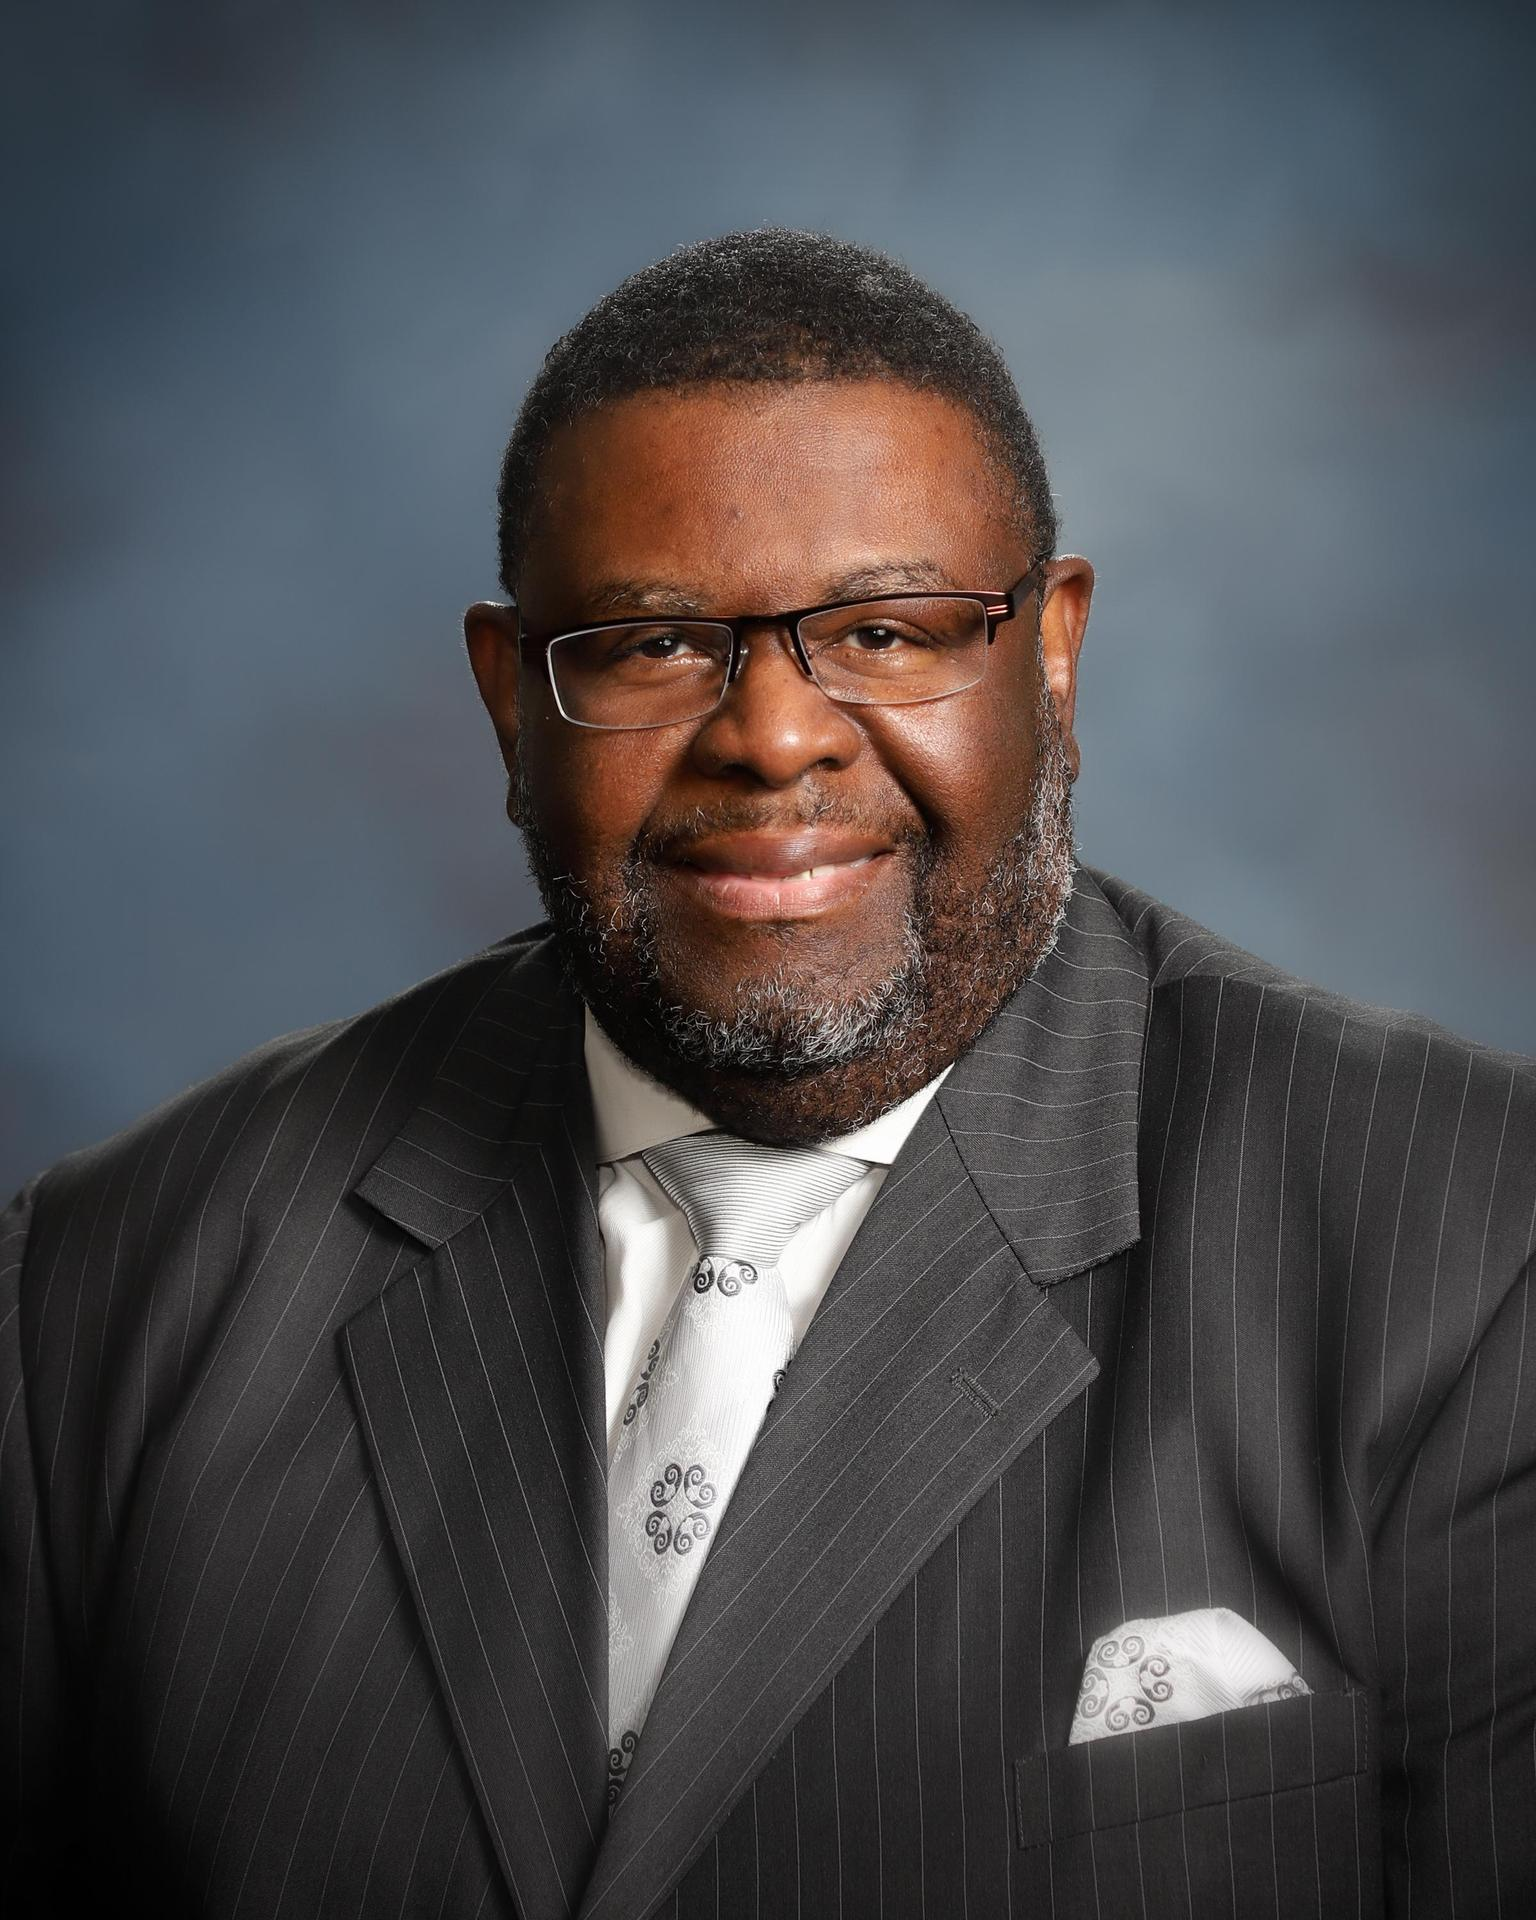 The Honorable Dr. James Harris